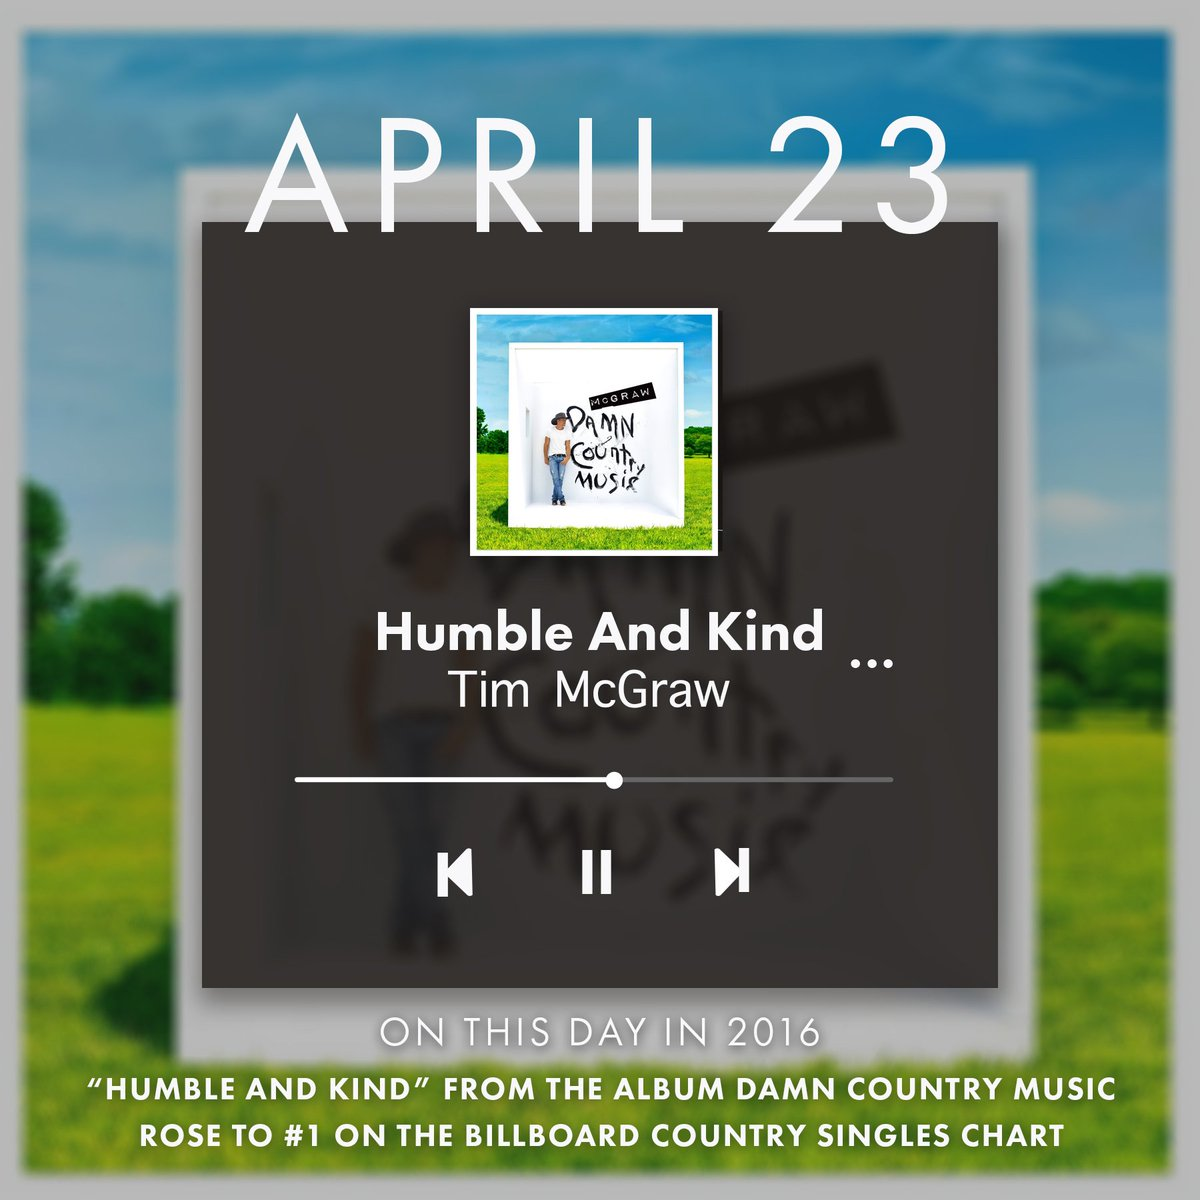 On this day two years ago, 'Humble and Kind' hit number one on the @billboard country singles chart. Listen now: https://t.co/aVoX7sGRv0 #HumbleandKind #TeamMcGraw